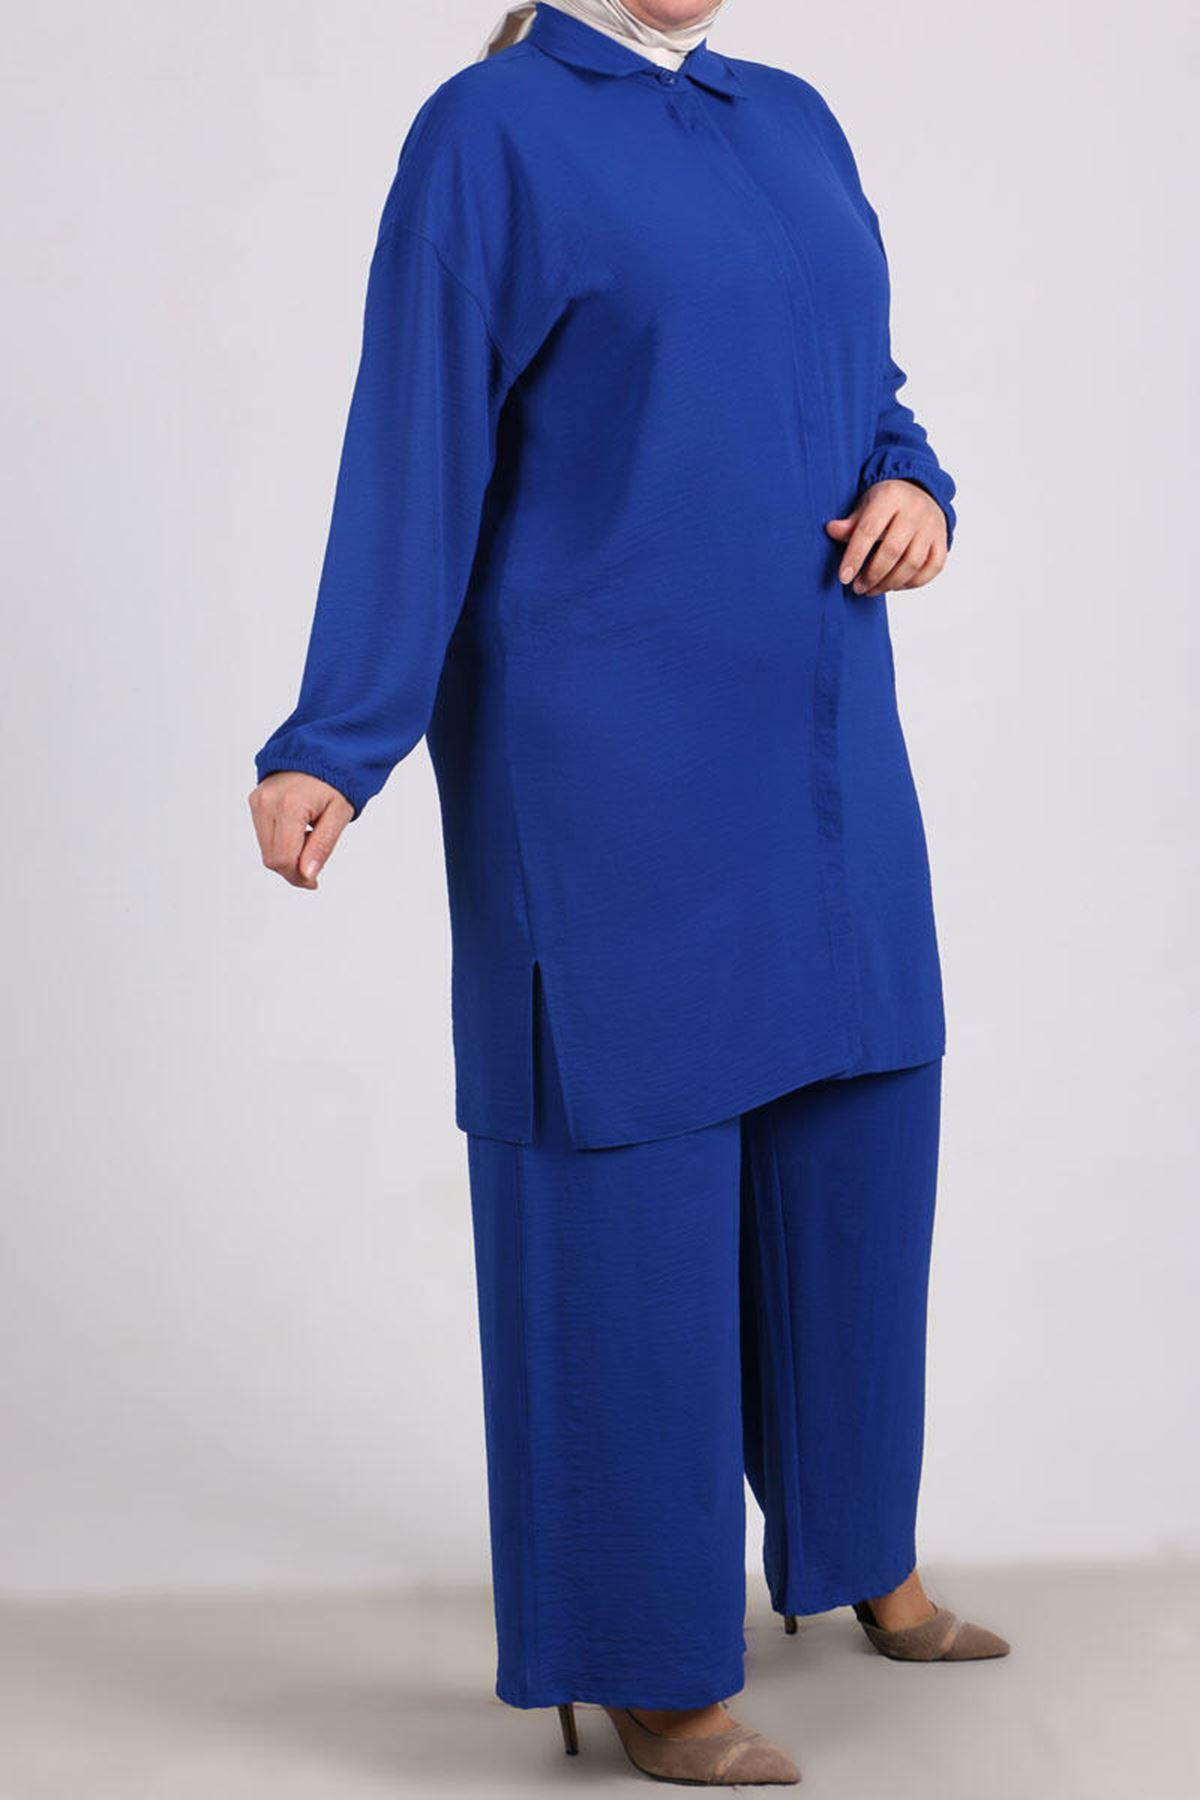 7682 Plus Size Hidden Buttoned Two Piece Set with Pants- Saxe